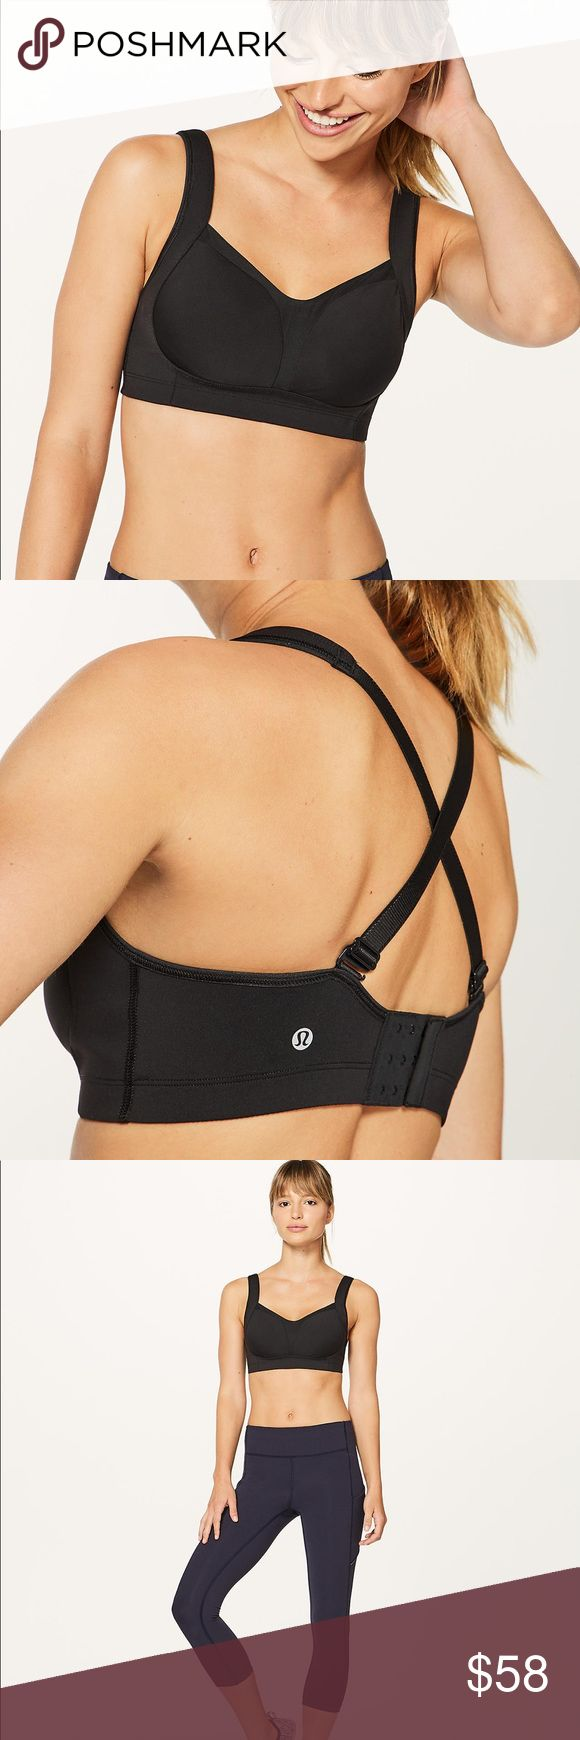 Lululemon Black Ta Ta Tamer III Sports Bra 32E Tata tamer 3 sports bra. NWT. Heavy duty support, separation, and coverage that you crave. Made with Luxtreme® fabric that is sweat-wicking and four-way stretch with a cool, smooth feel. The straps can be adjust criss cross or standard front to back.   Comes with the proper cut and removable pads, specifically for this Sports Bra.   These are made for high impact and for tanks without built in bras. Can be used as a regular support bra and…